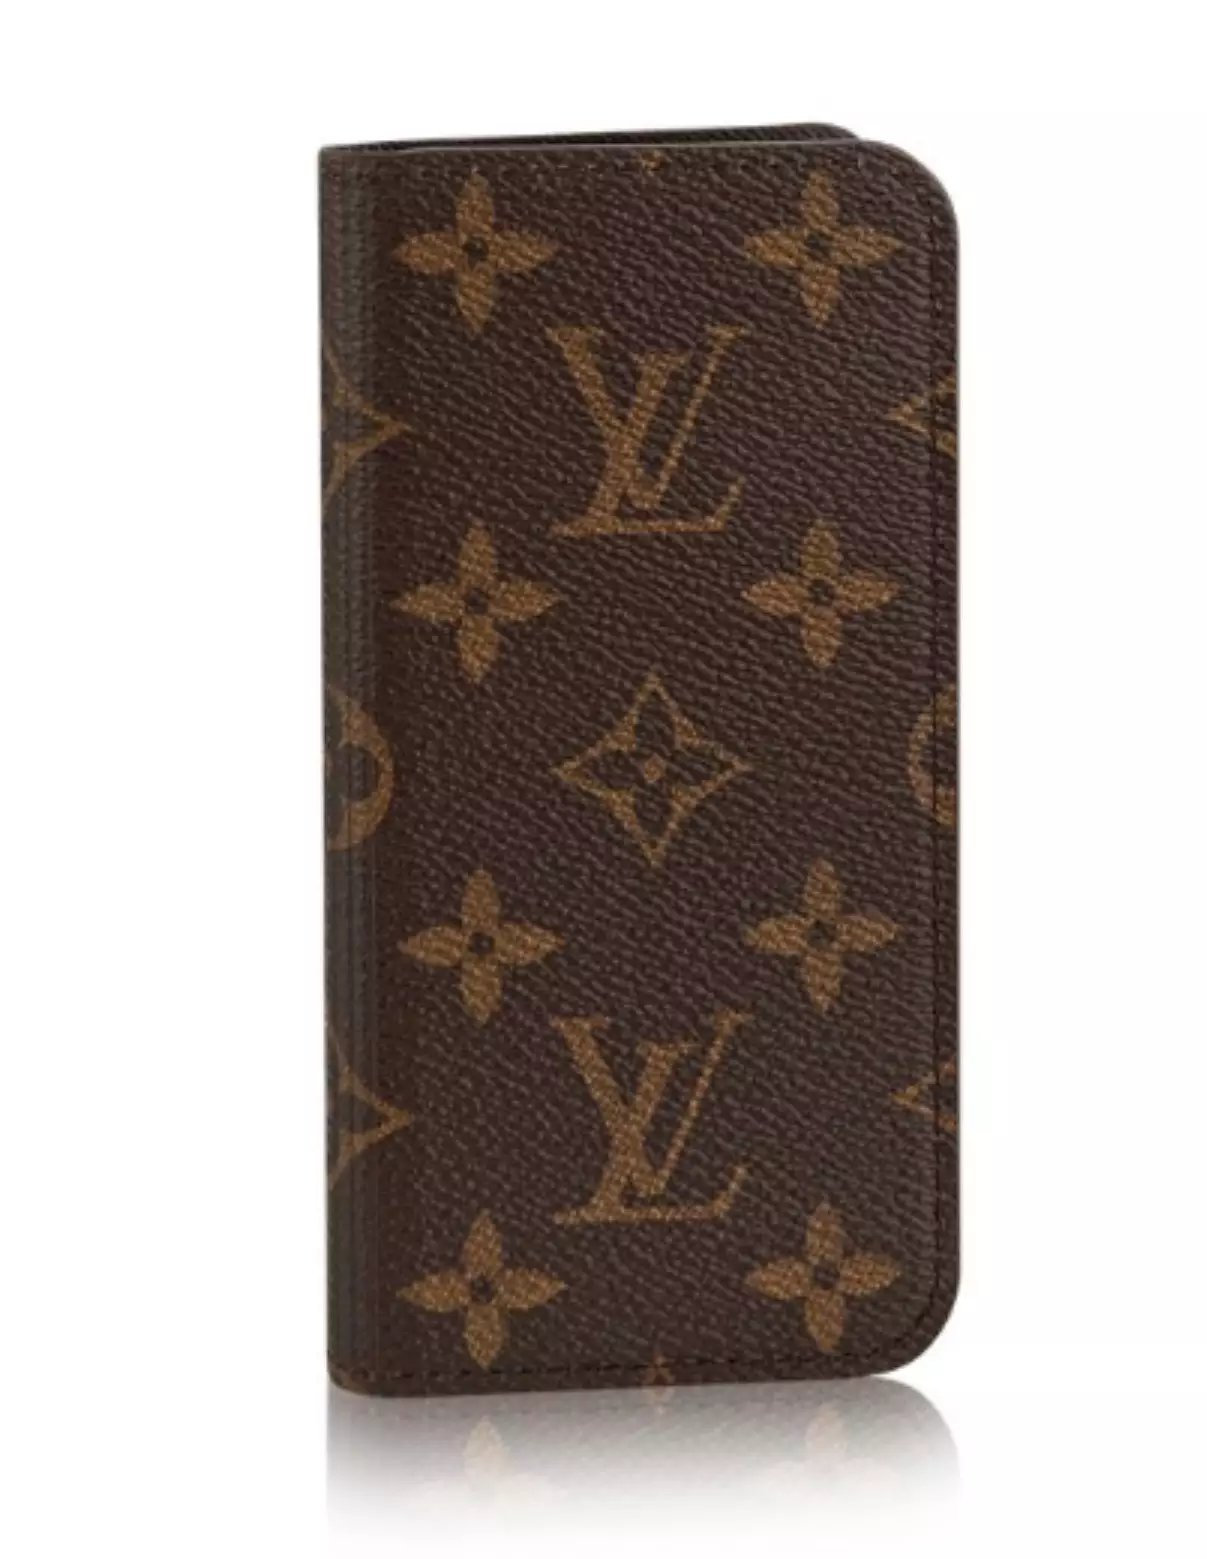 iphone hüllen foto iphone hülle Louis Vuitton iphone 8 hüllen iphone klapphülle hülle für handy 8lbst gestalten designer iphone 8 hülle handyhülle personalisieren schöne handyhüllen handy zubehör iphone 8